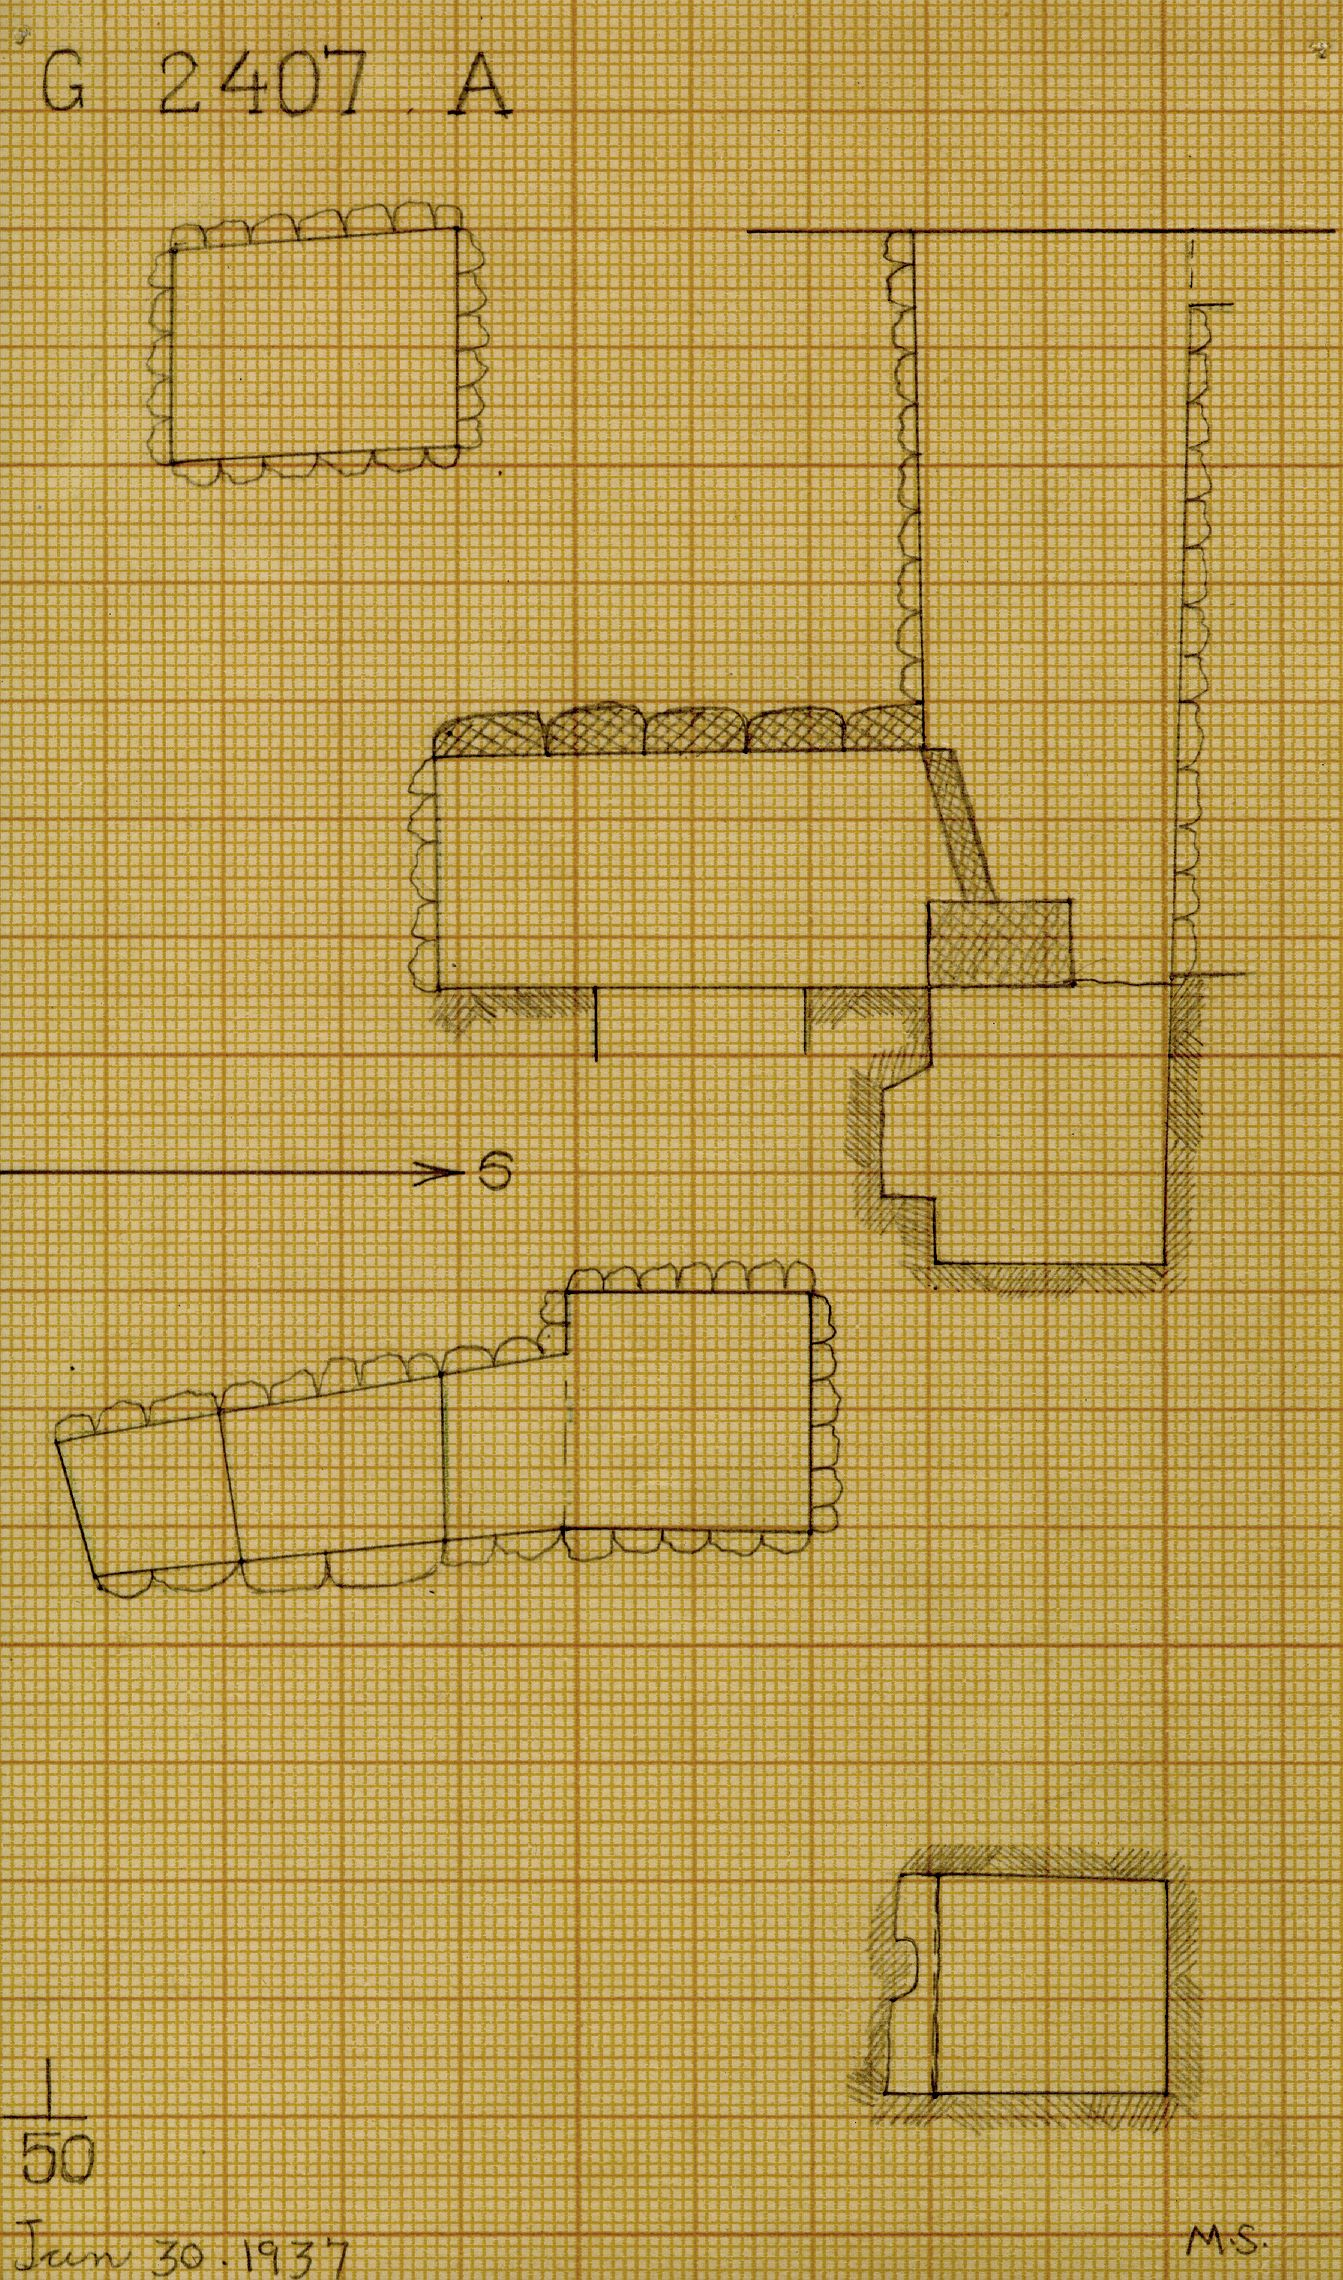 Maps and plans: G 2407, Shaft A